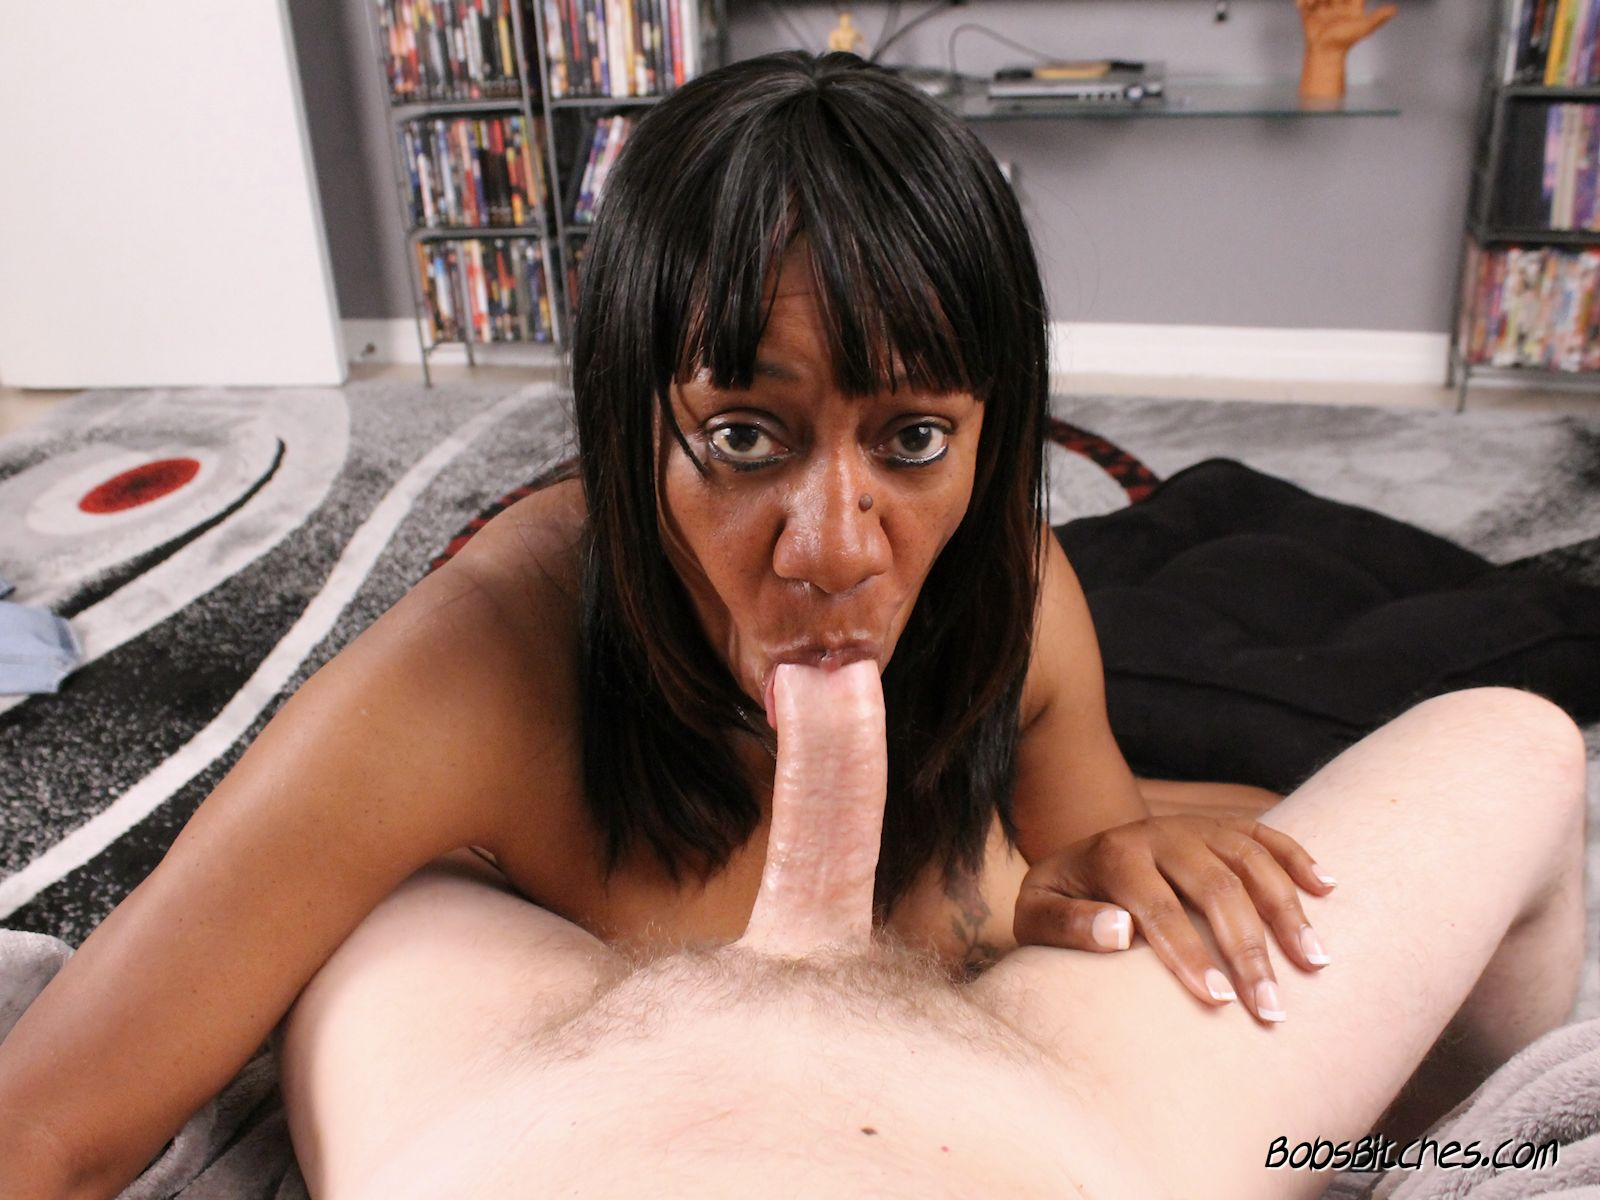 Ebony milf, Ginger, sucks white cock.